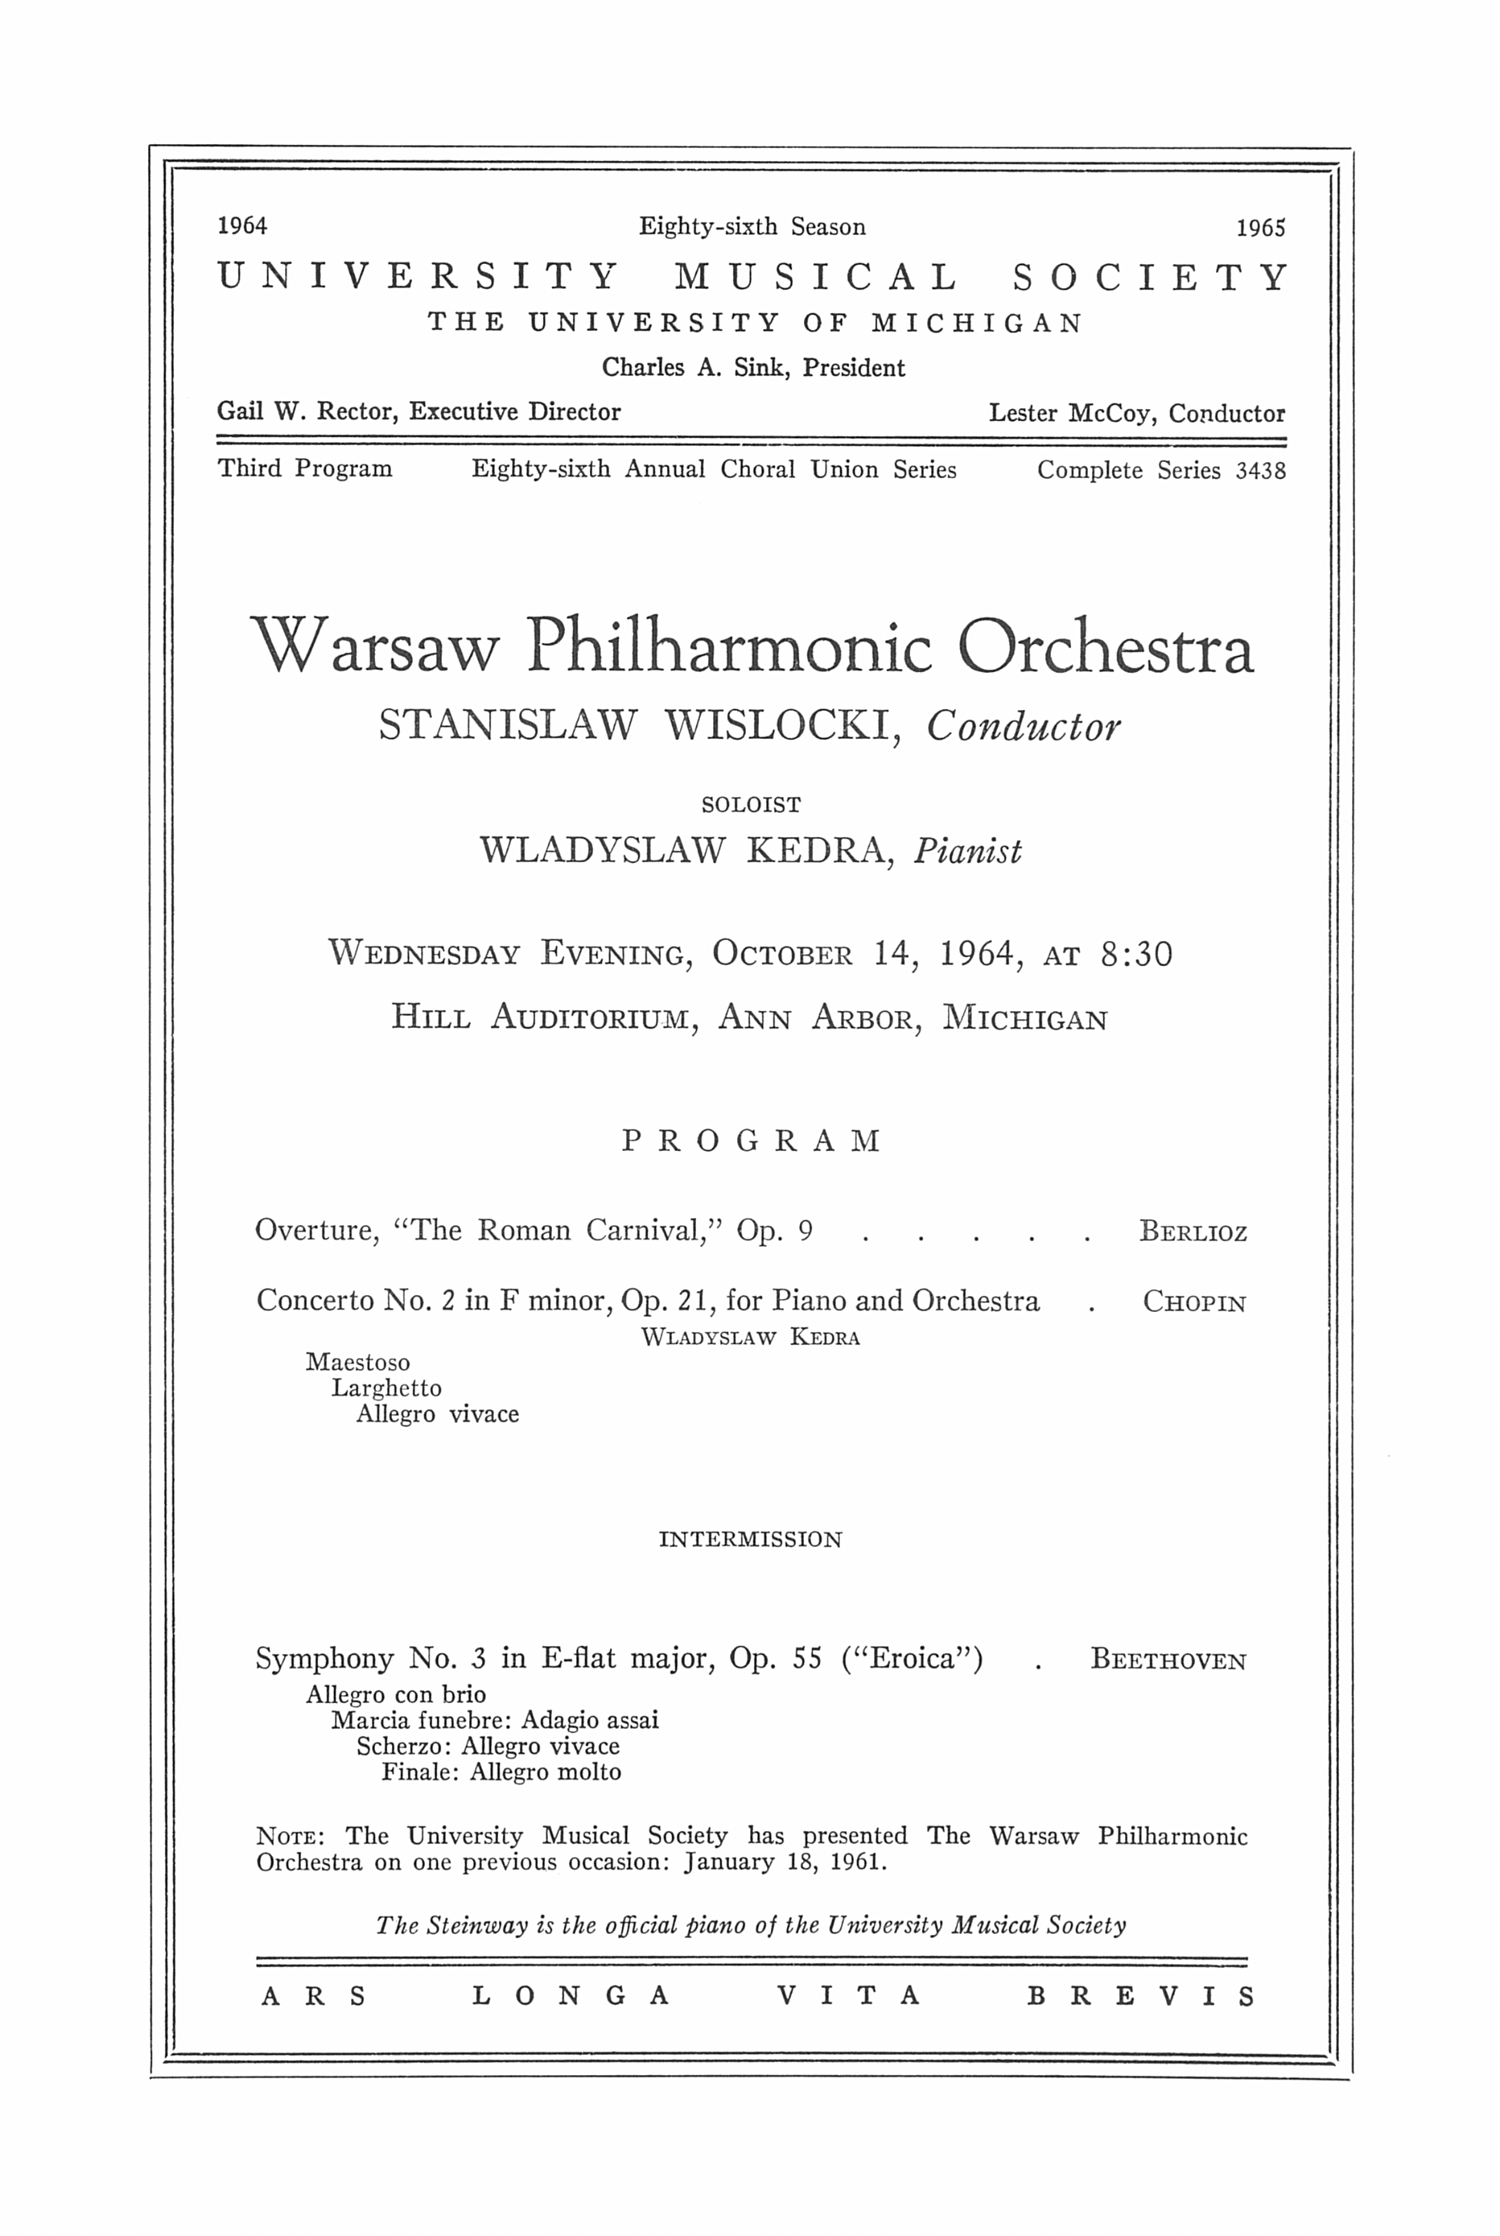 UMS Concert Program, October 14, 1964: Warsaw Philharmonic Orchestra --  image